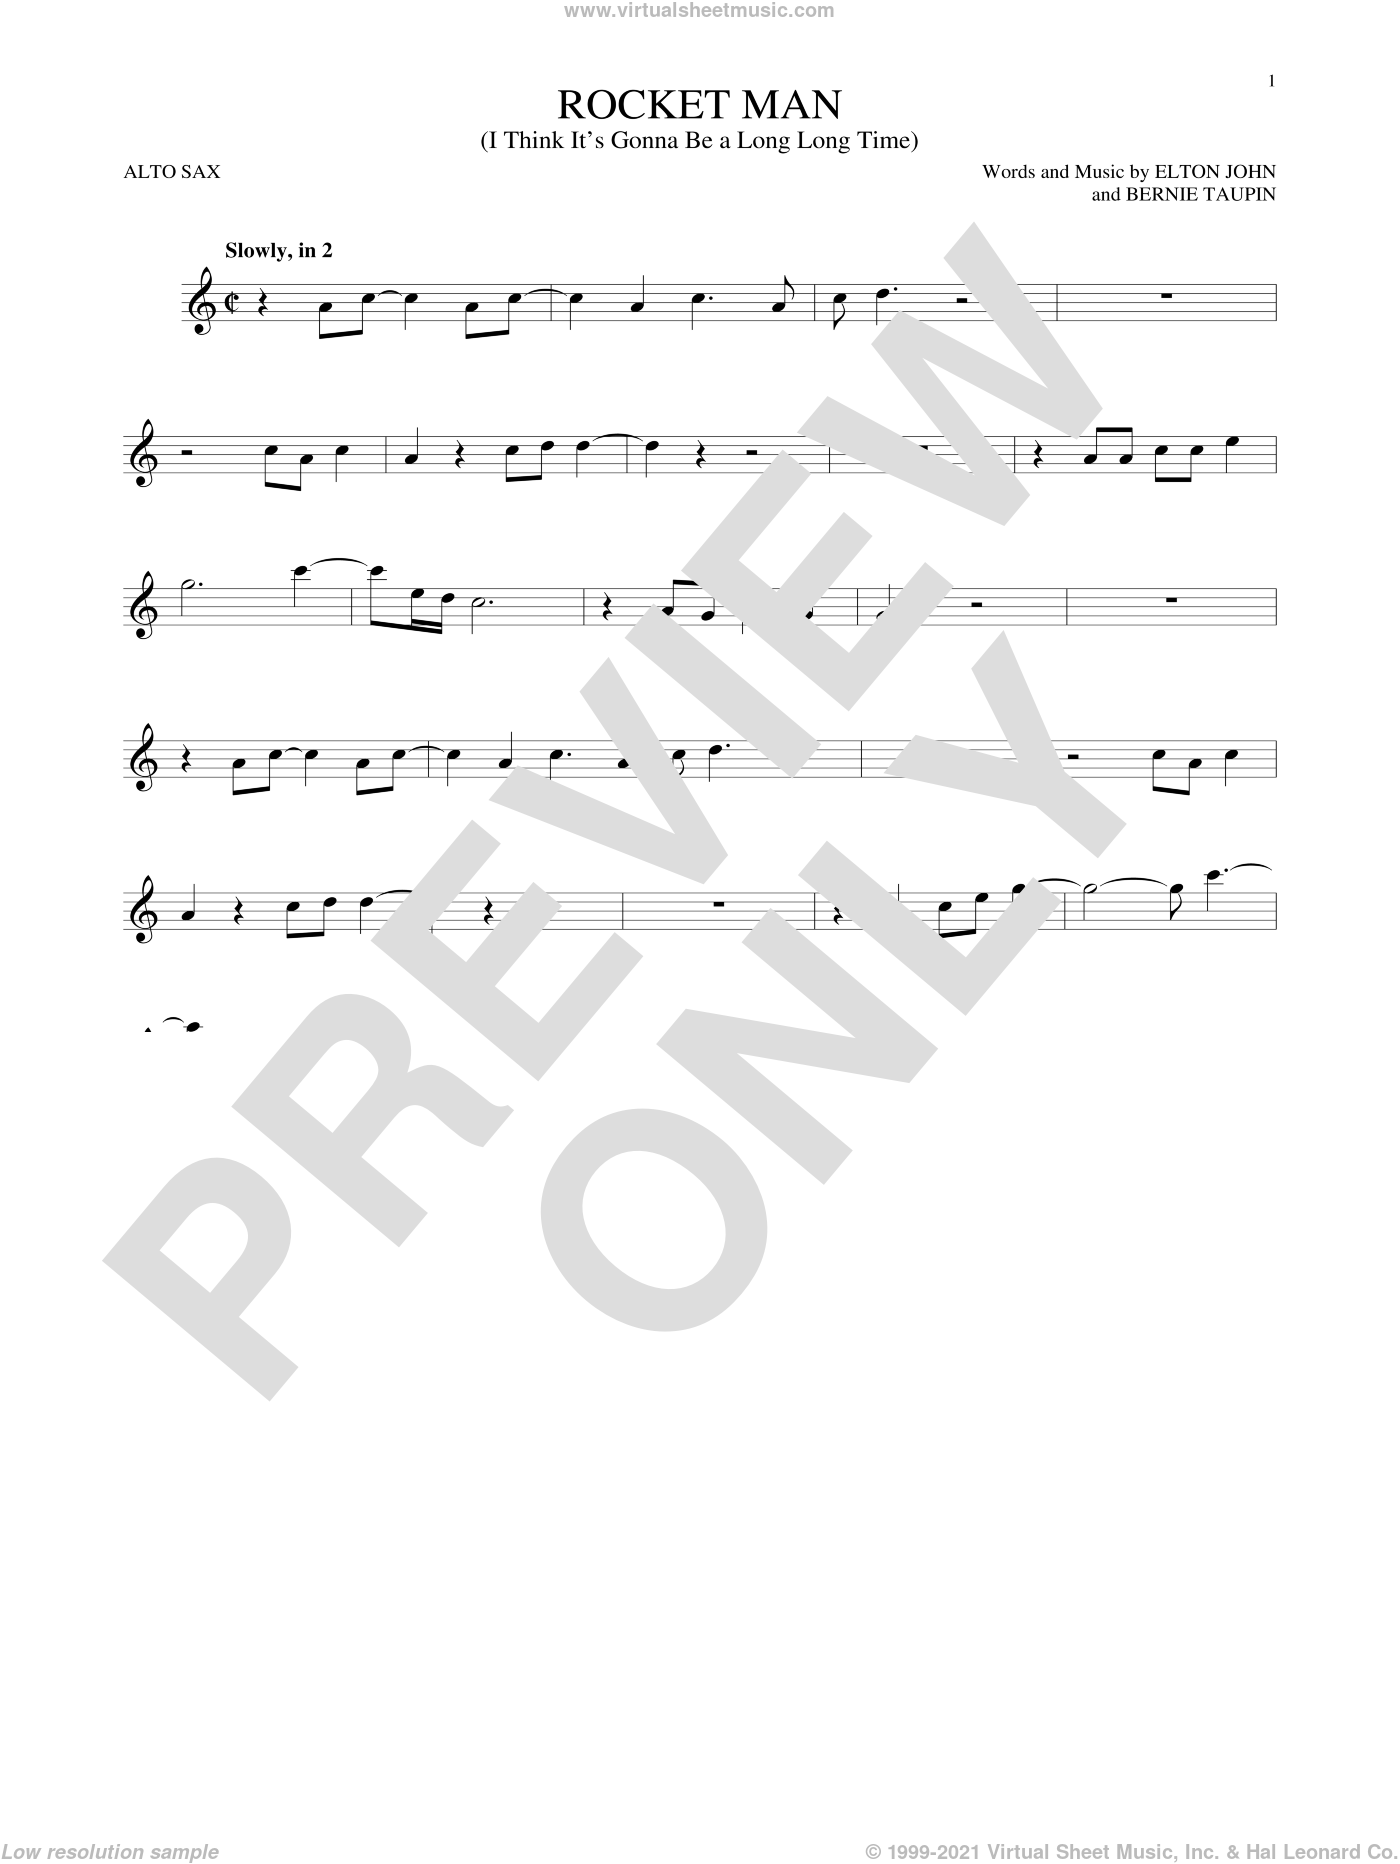 Rocket Man (I Think It's Gonna Be A Long Long Time) sheet music for alto saxophone solo by Elton John and Bernie Taupin, intermediate skill level